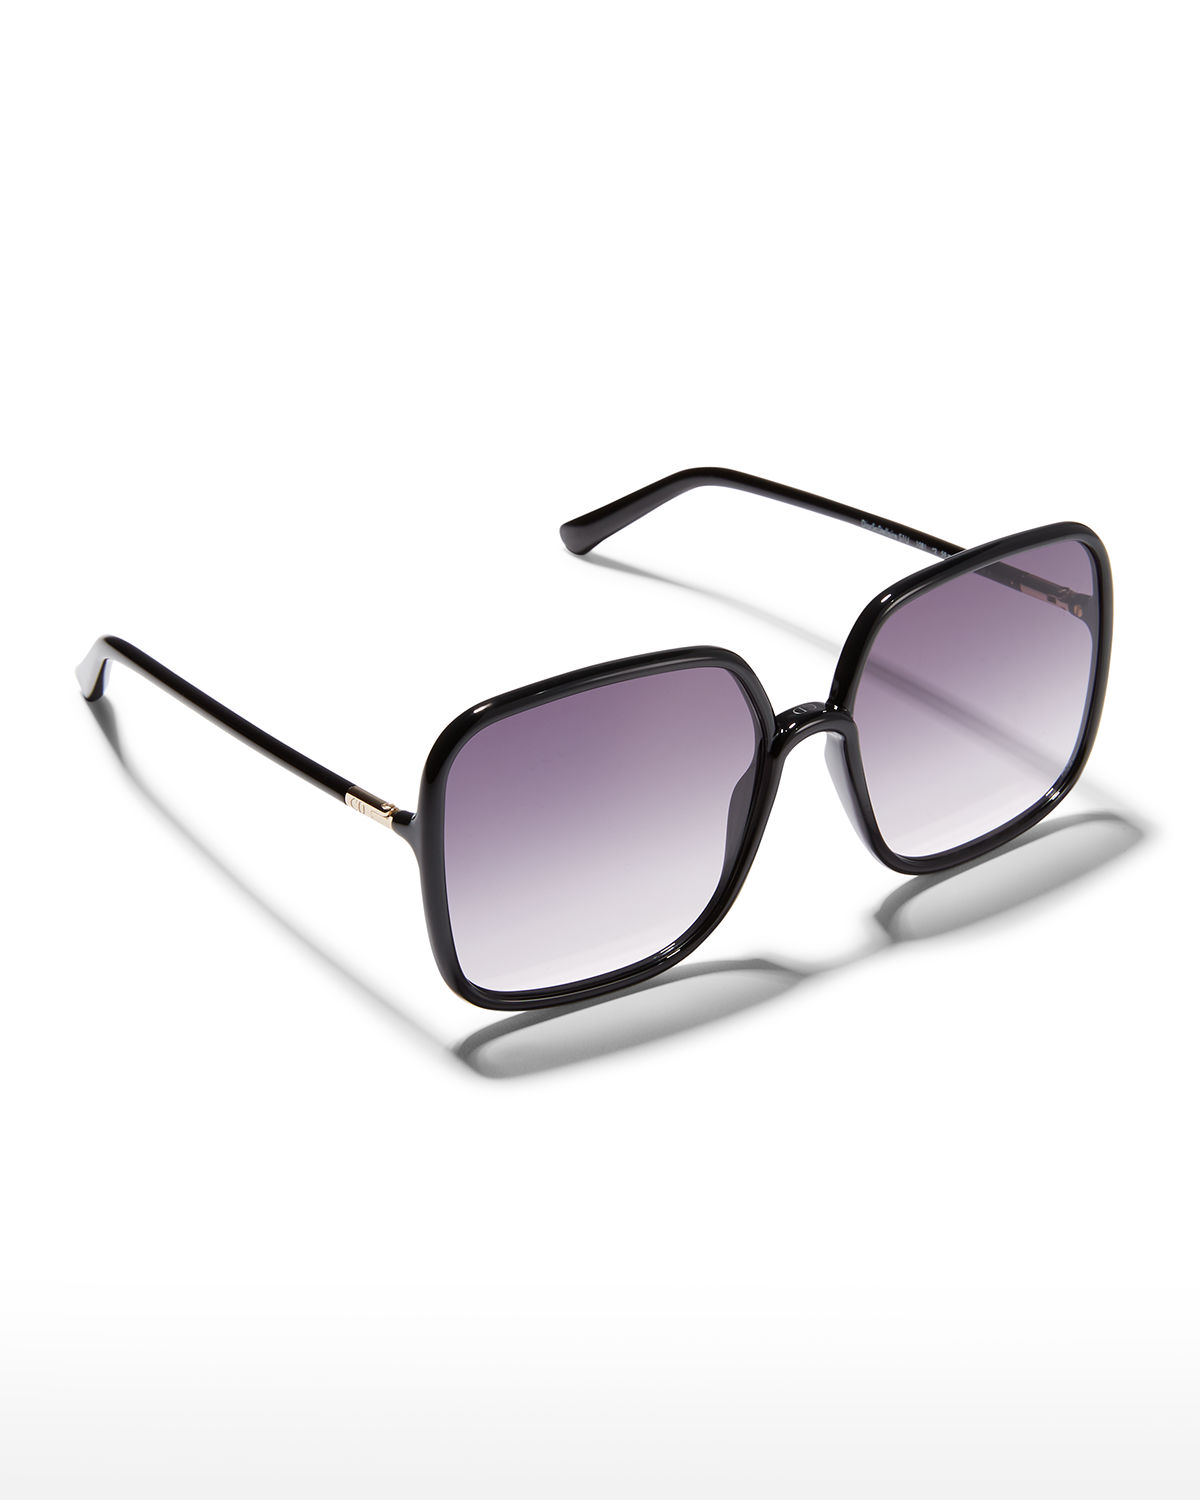 SoStellaire1 59mm Oversized Square Injection Plastic Sunglasses